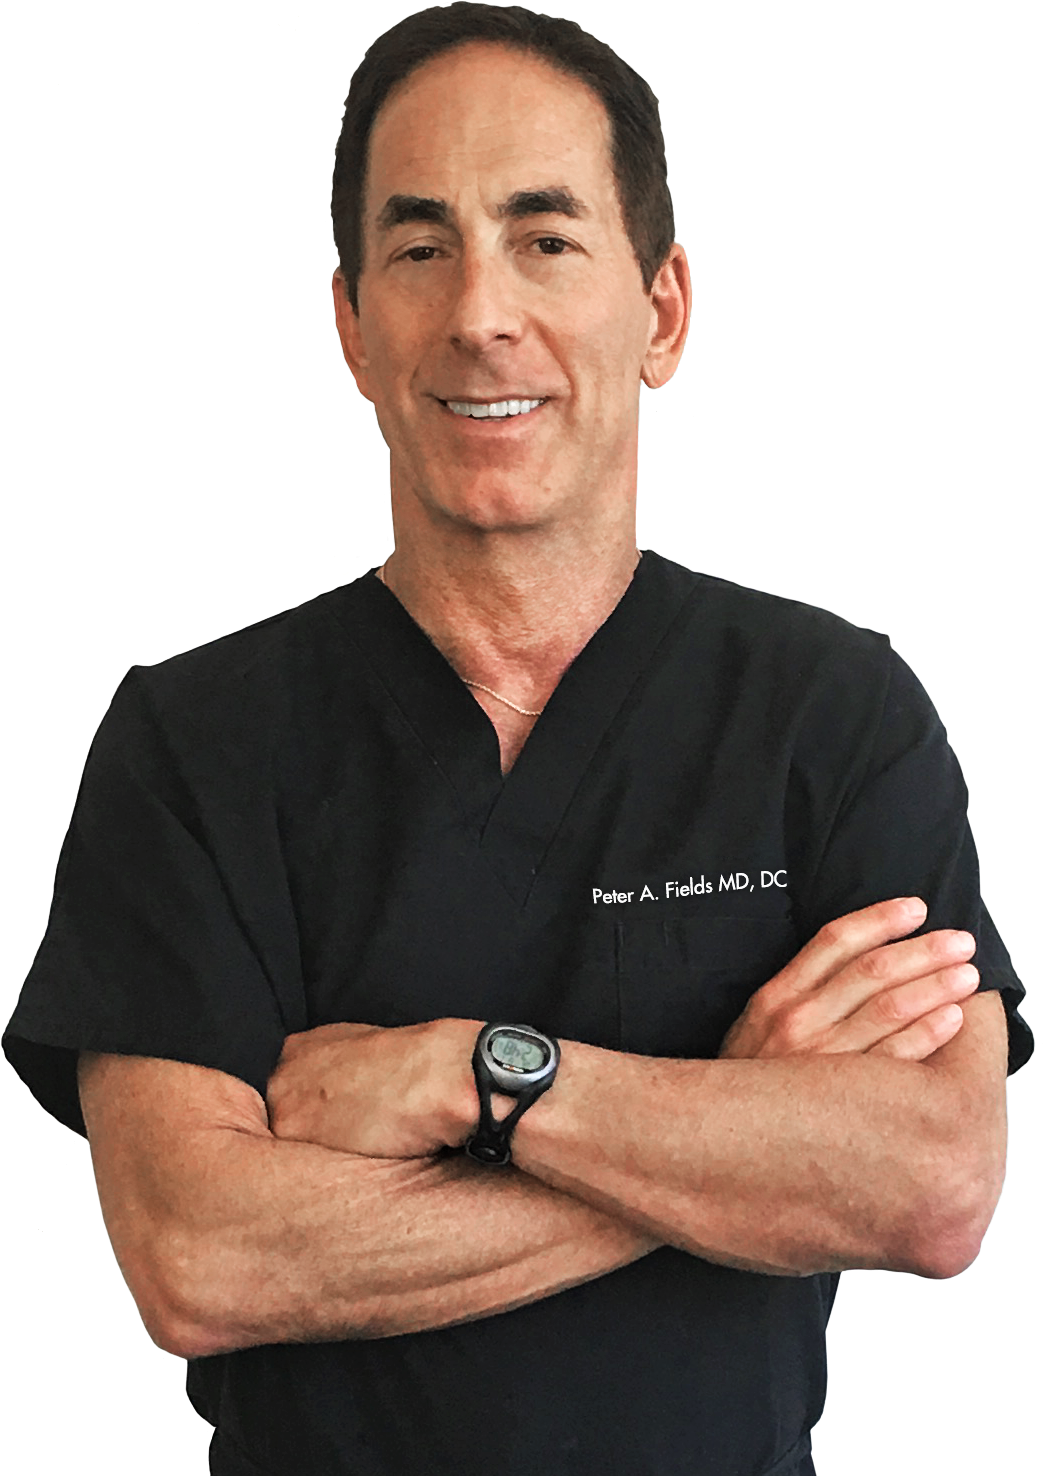 dr. peter fields, md dc - REGENERATIVE ORTHOPEDICS: NON-SURGICAL REPAIR WITH STEM CELLS/PRP/PROLOTHERAPY